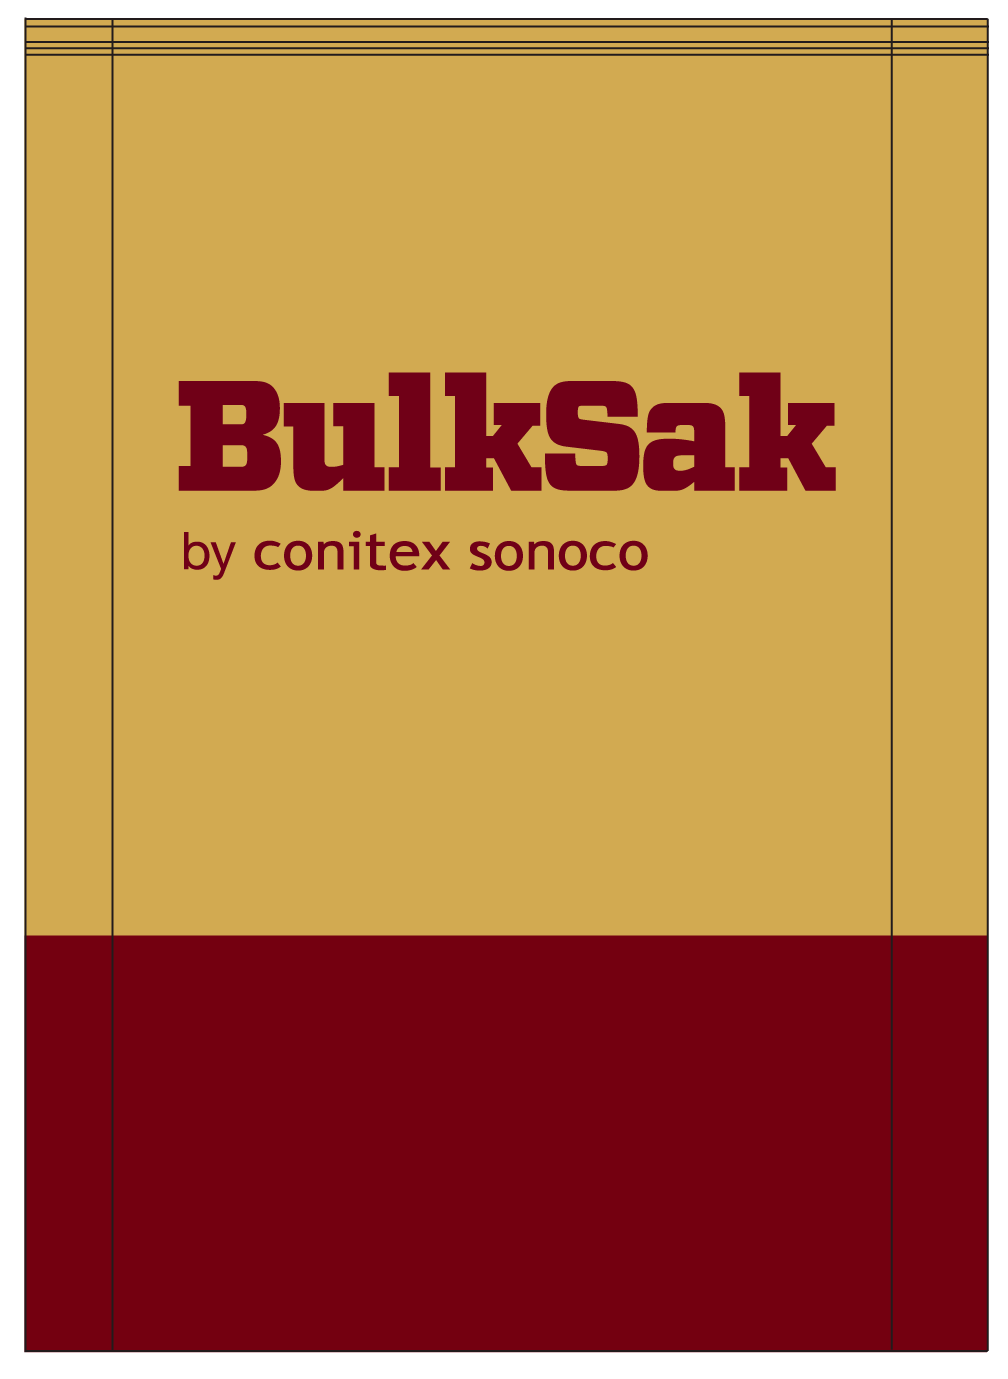 Pinched Bottom Paper Bag by Conitex Sonoco and BulkSak